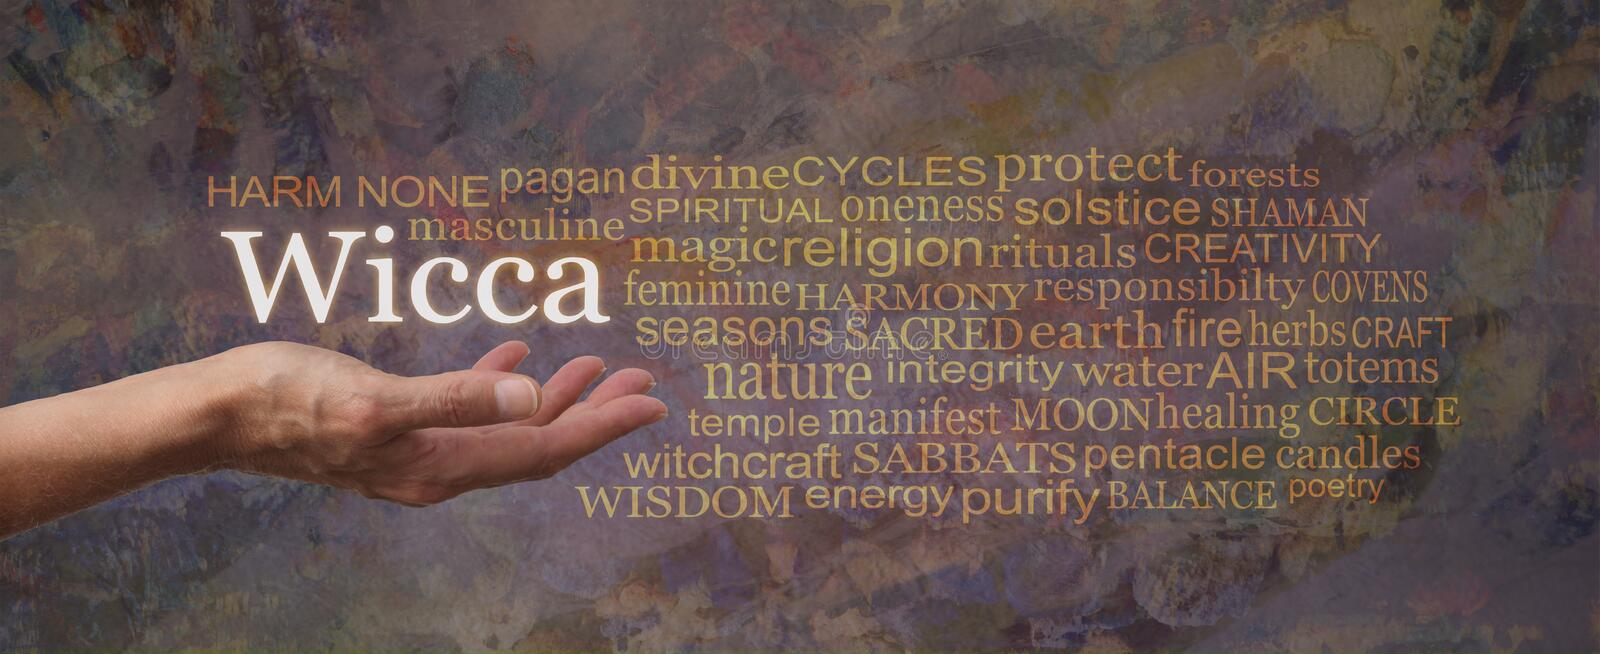 Harm None Wicca Word Tag Cloud stock photo